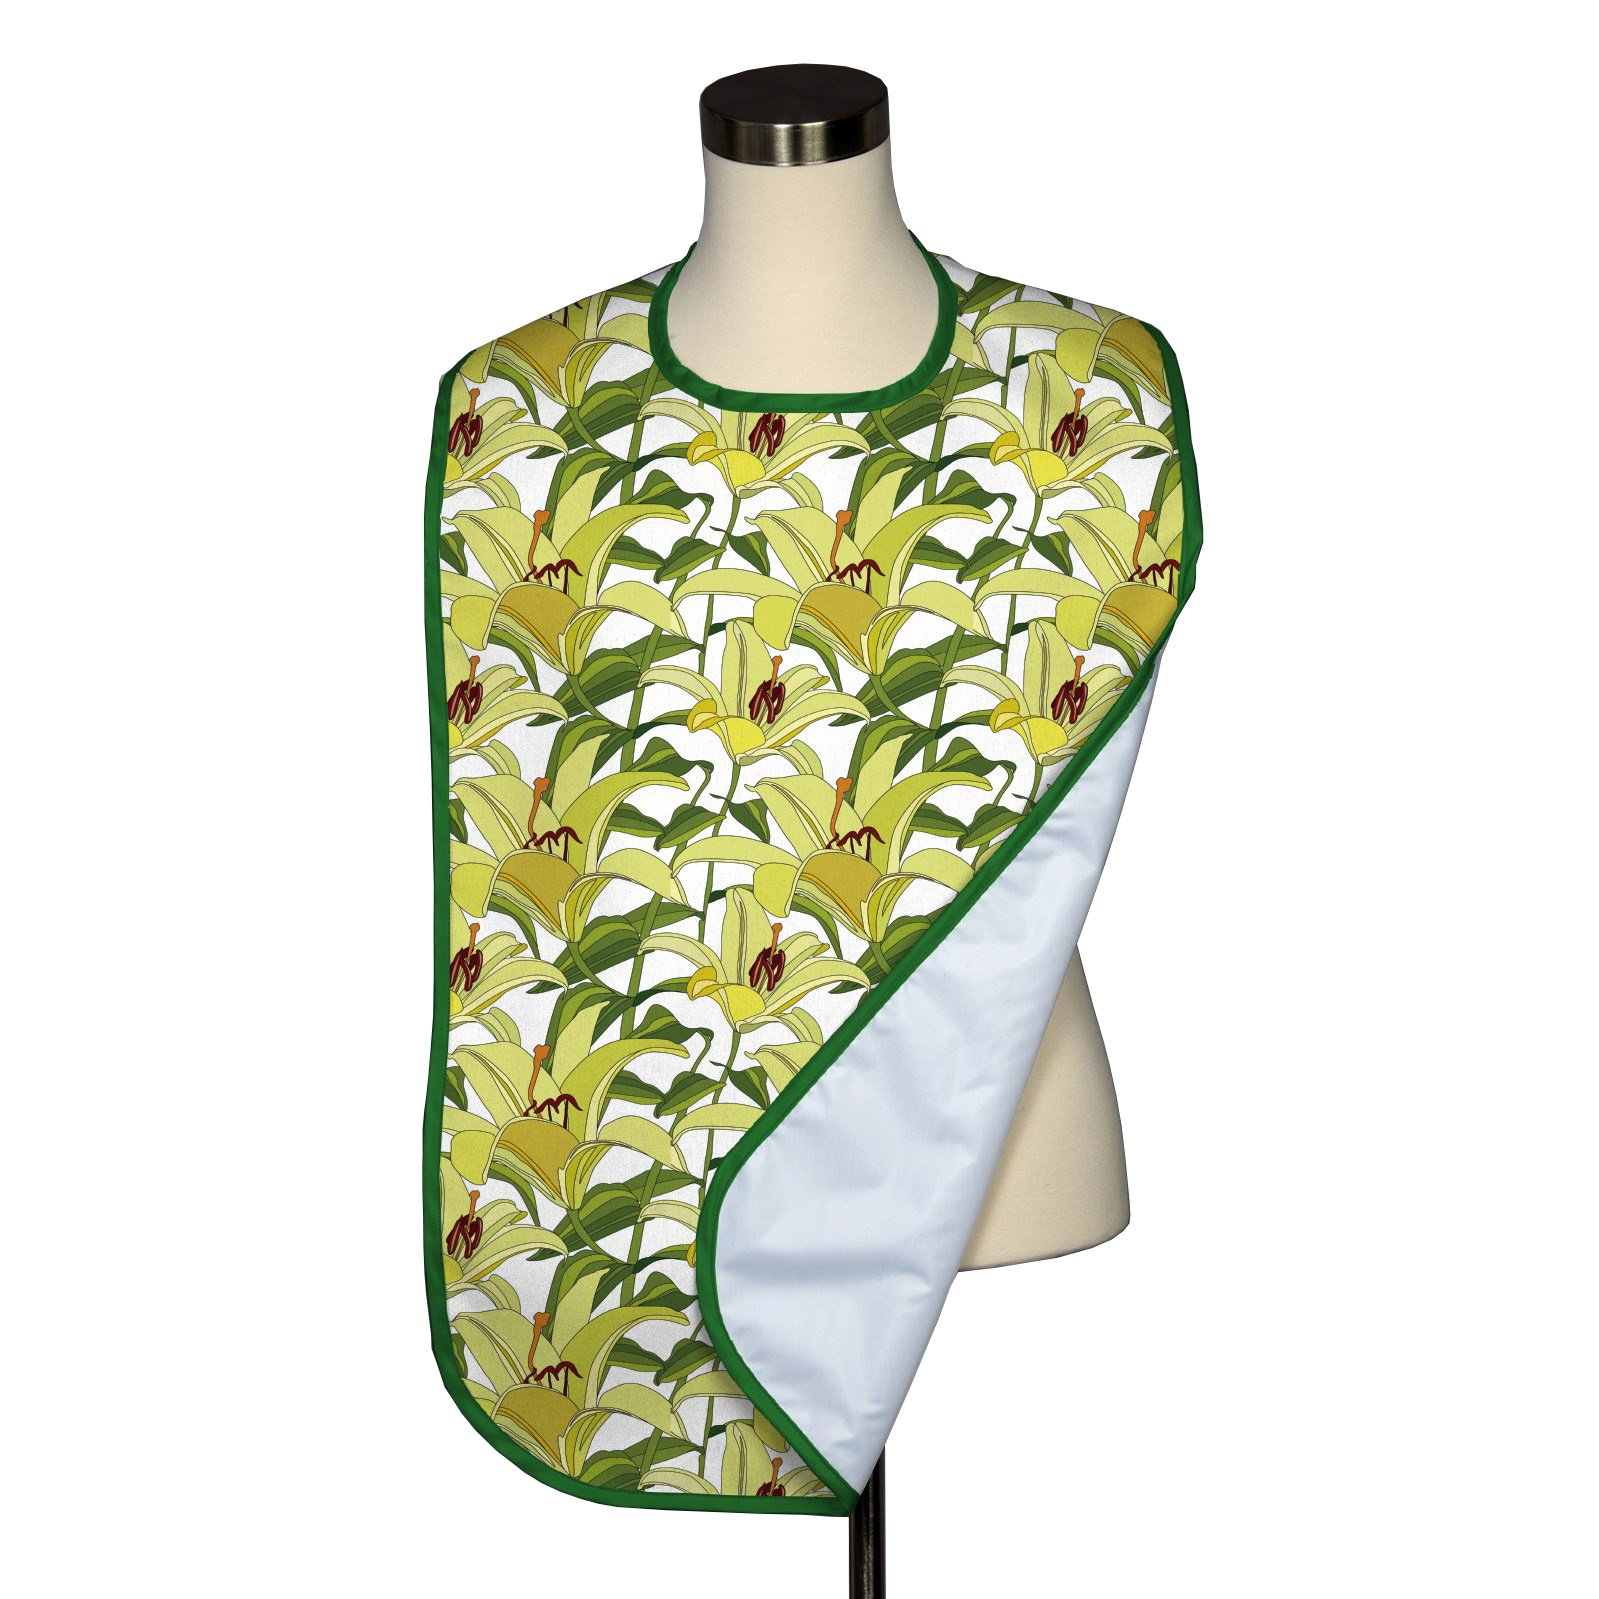 Citrus Tigerlily Adult Bib - Covered with Care - 5 Pack